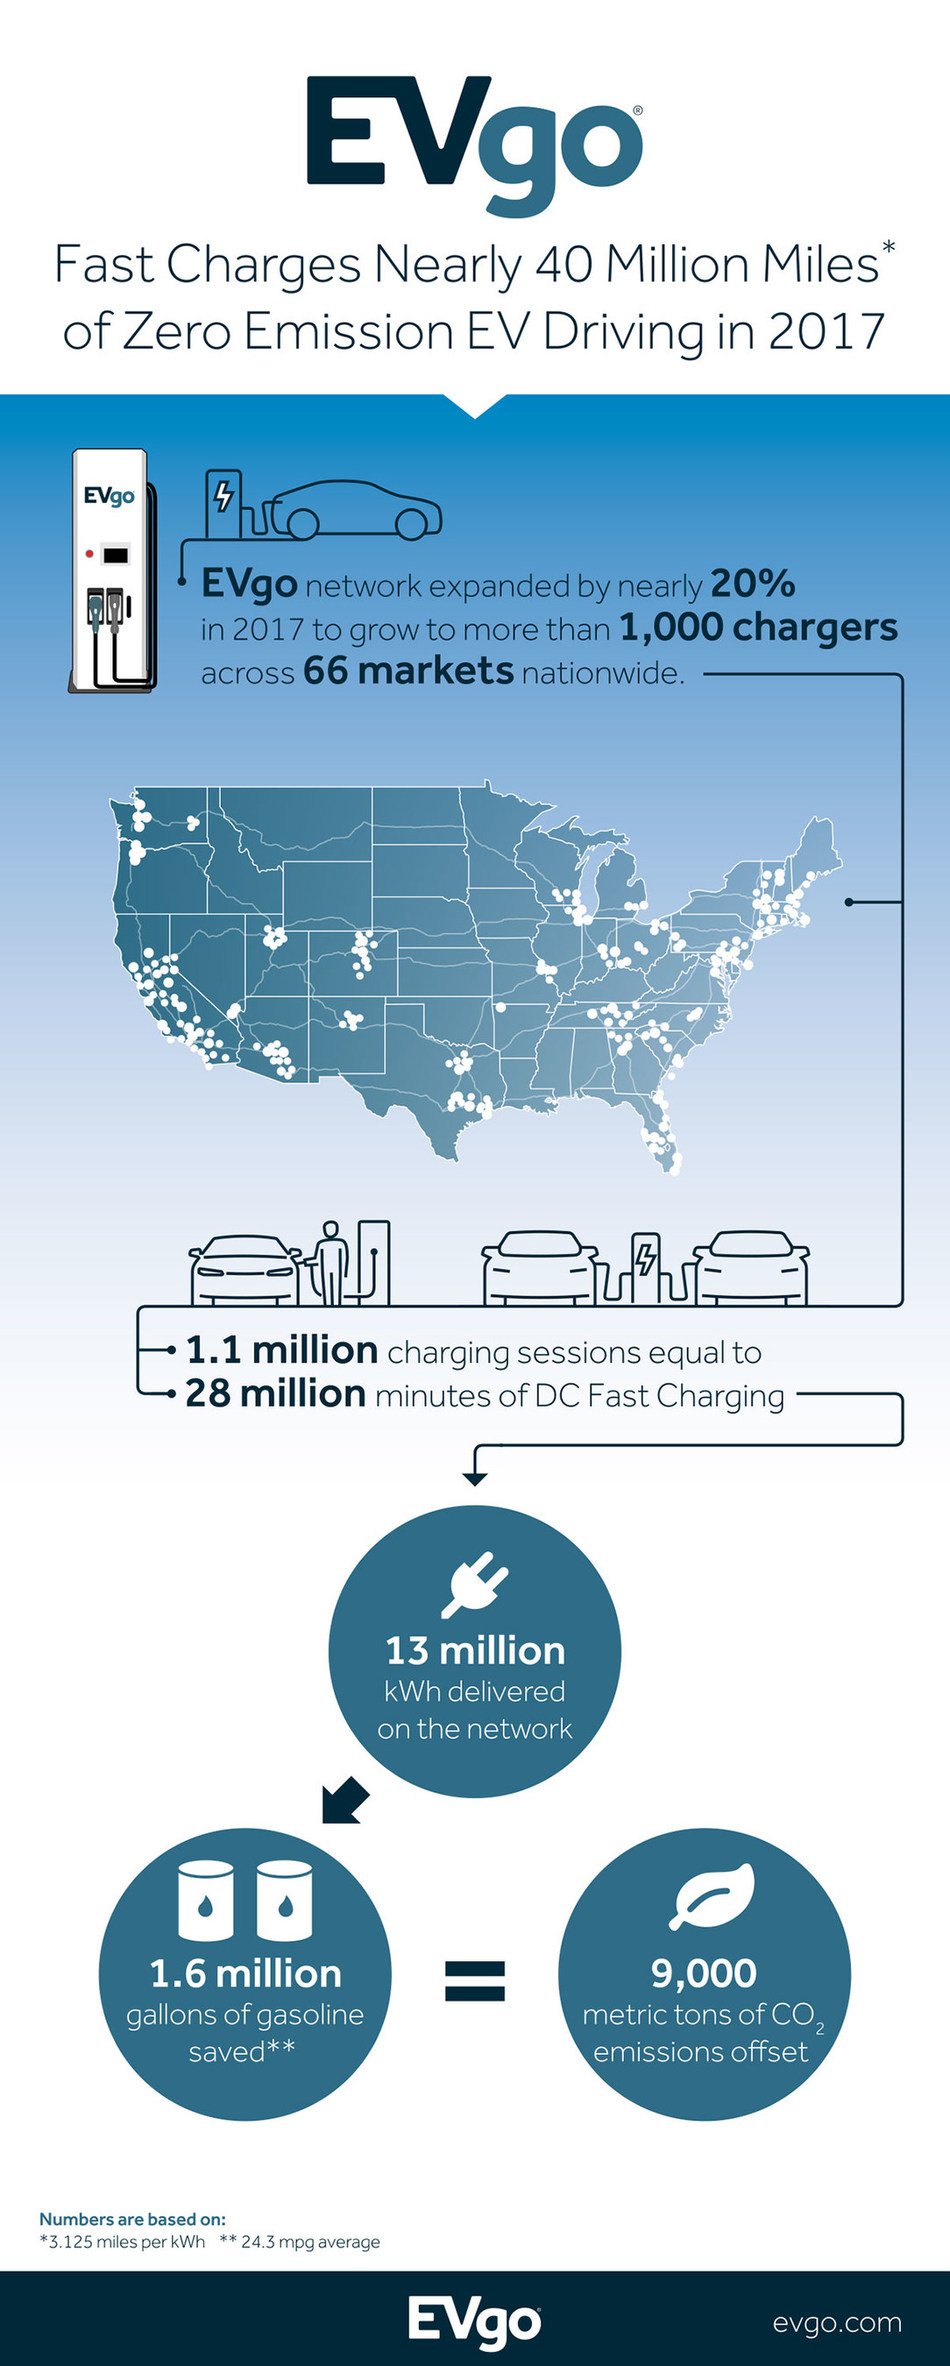 EVgo Fast Charges 40 Million Miles of Zero Emission EV Driving in 2017